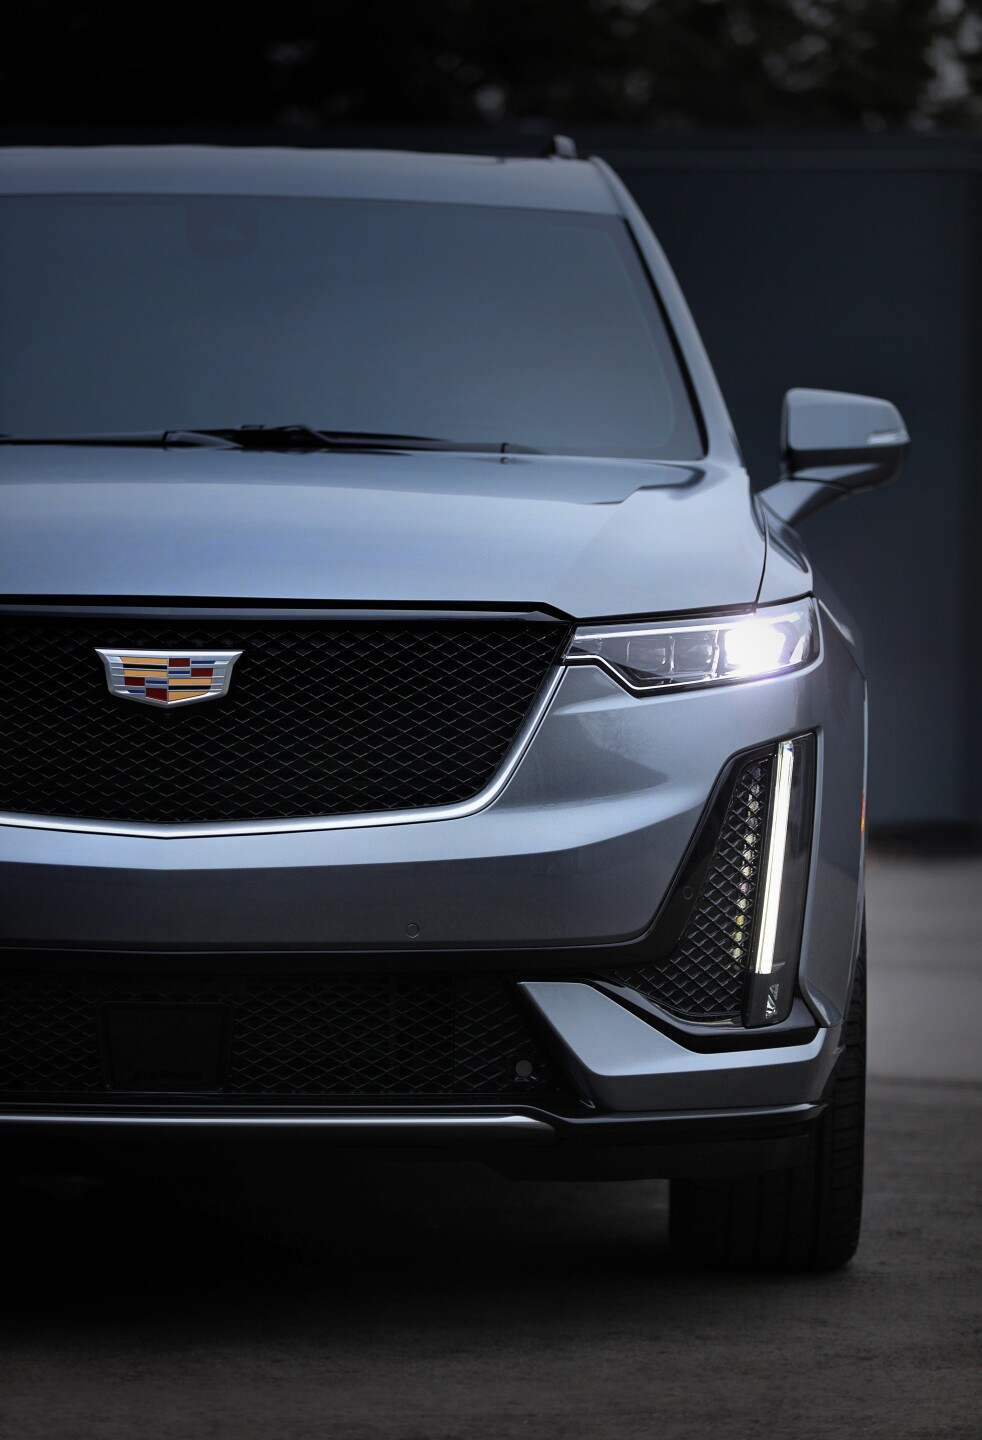 The Cadillac XT6 Sport is defined by darker accents and more agg